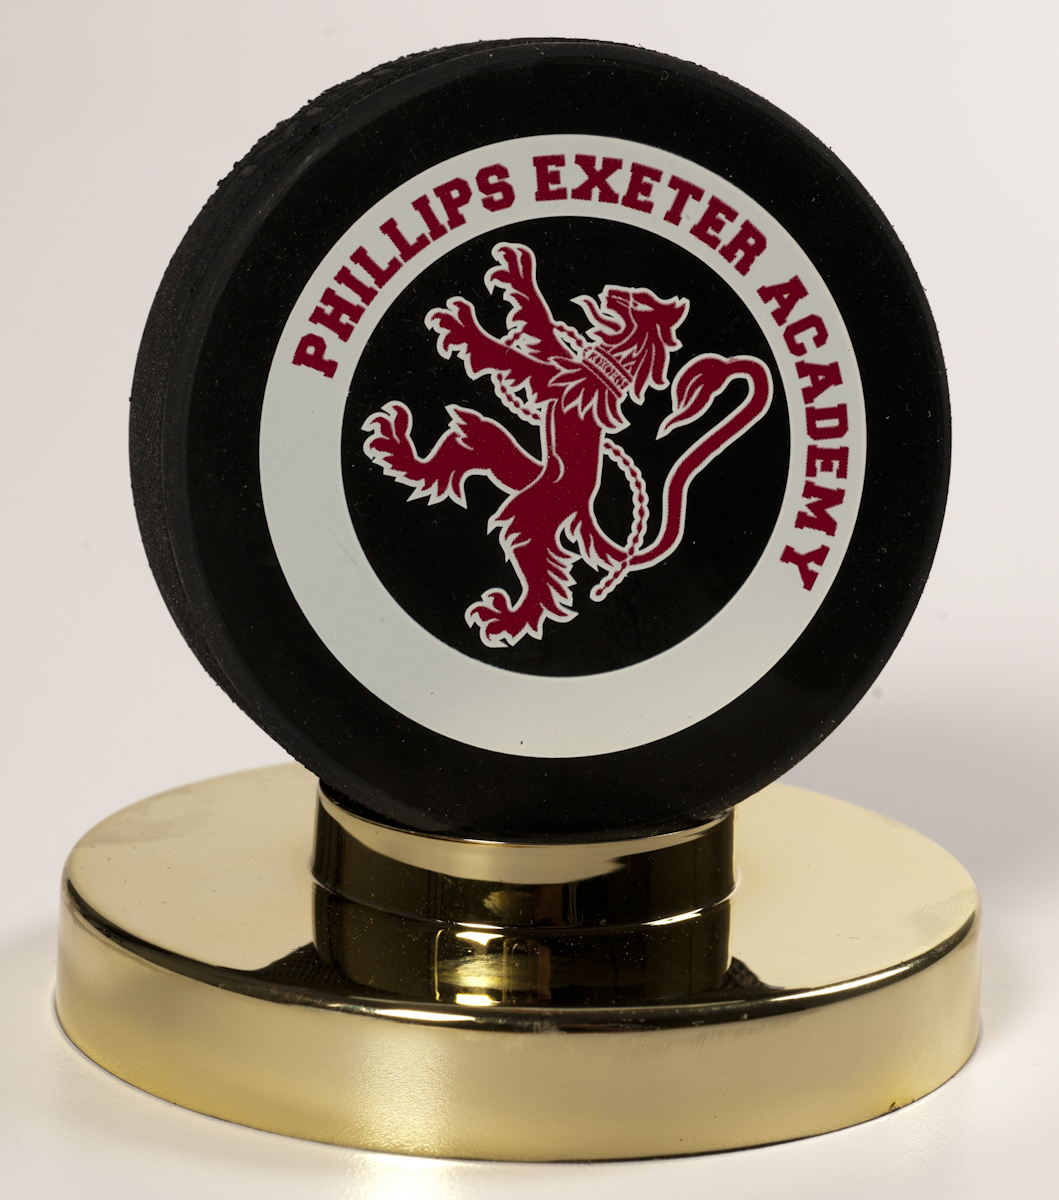 Phillips Exeter Academy puck